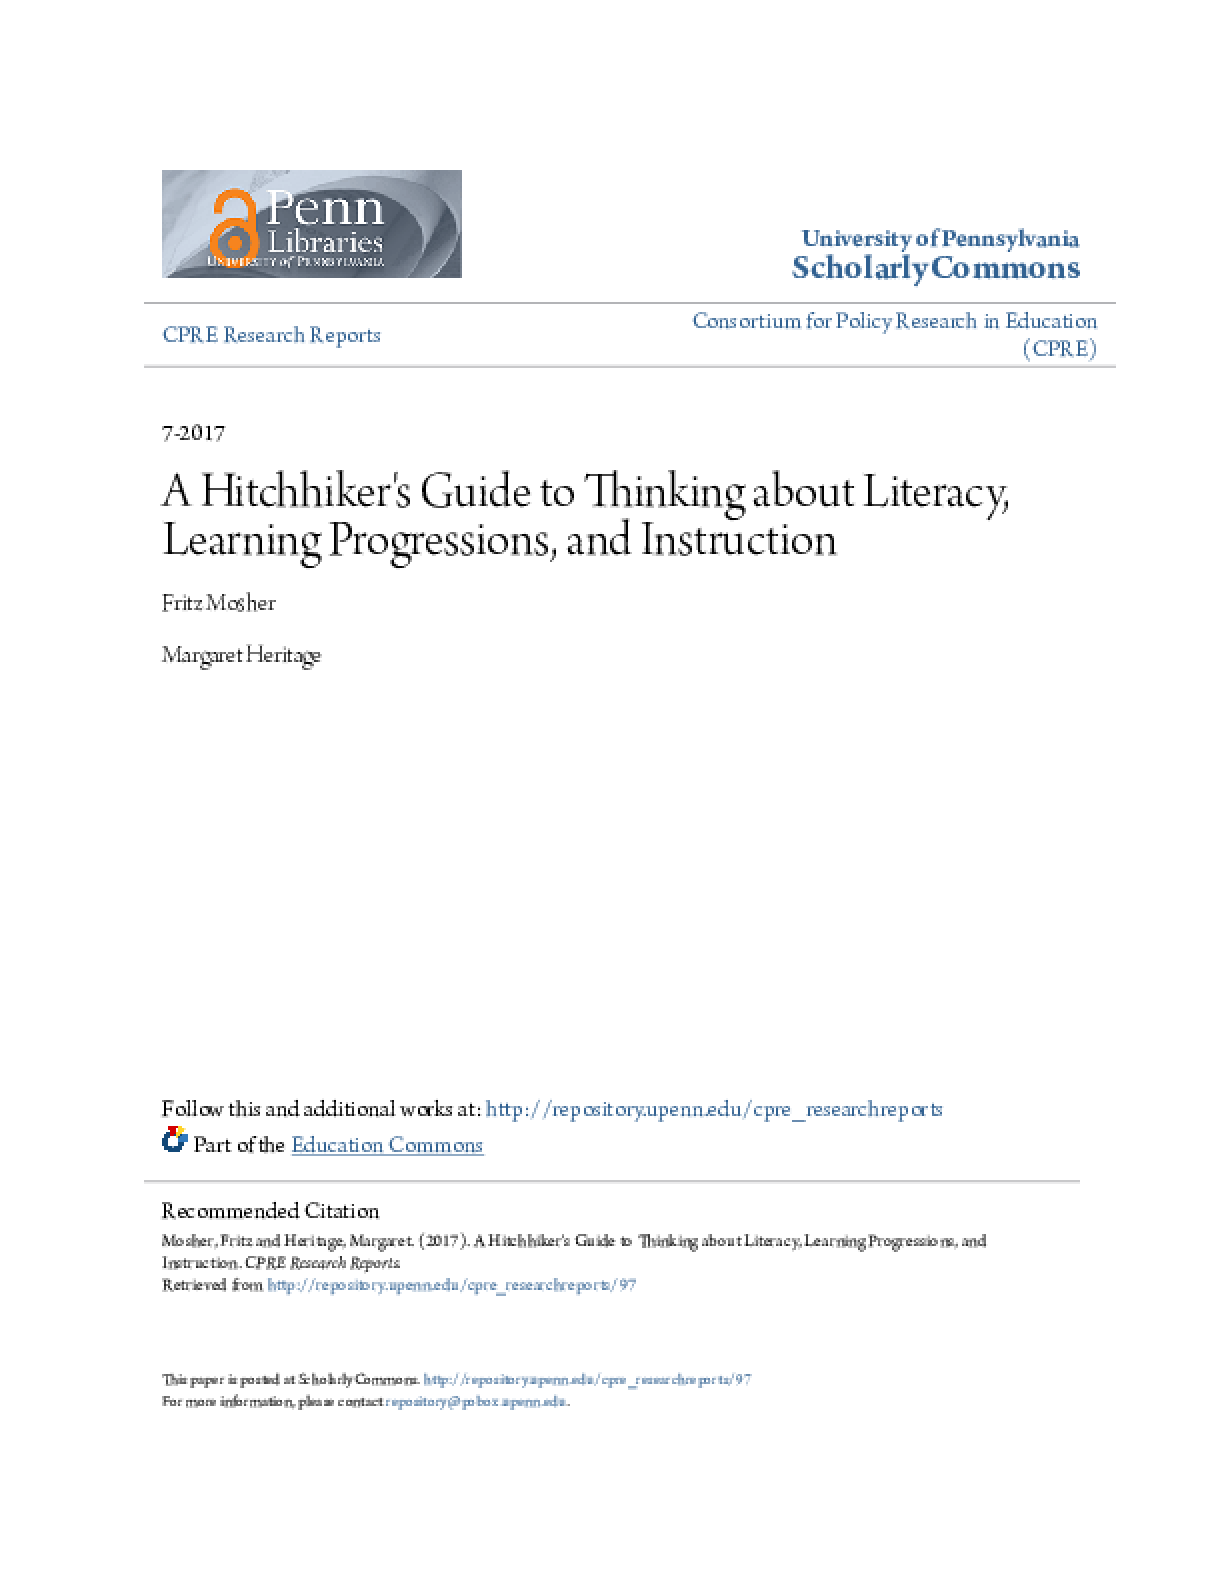 A Hitchhiker's Guide to Thinking about Literacy, Learning Progressions, and Instruction